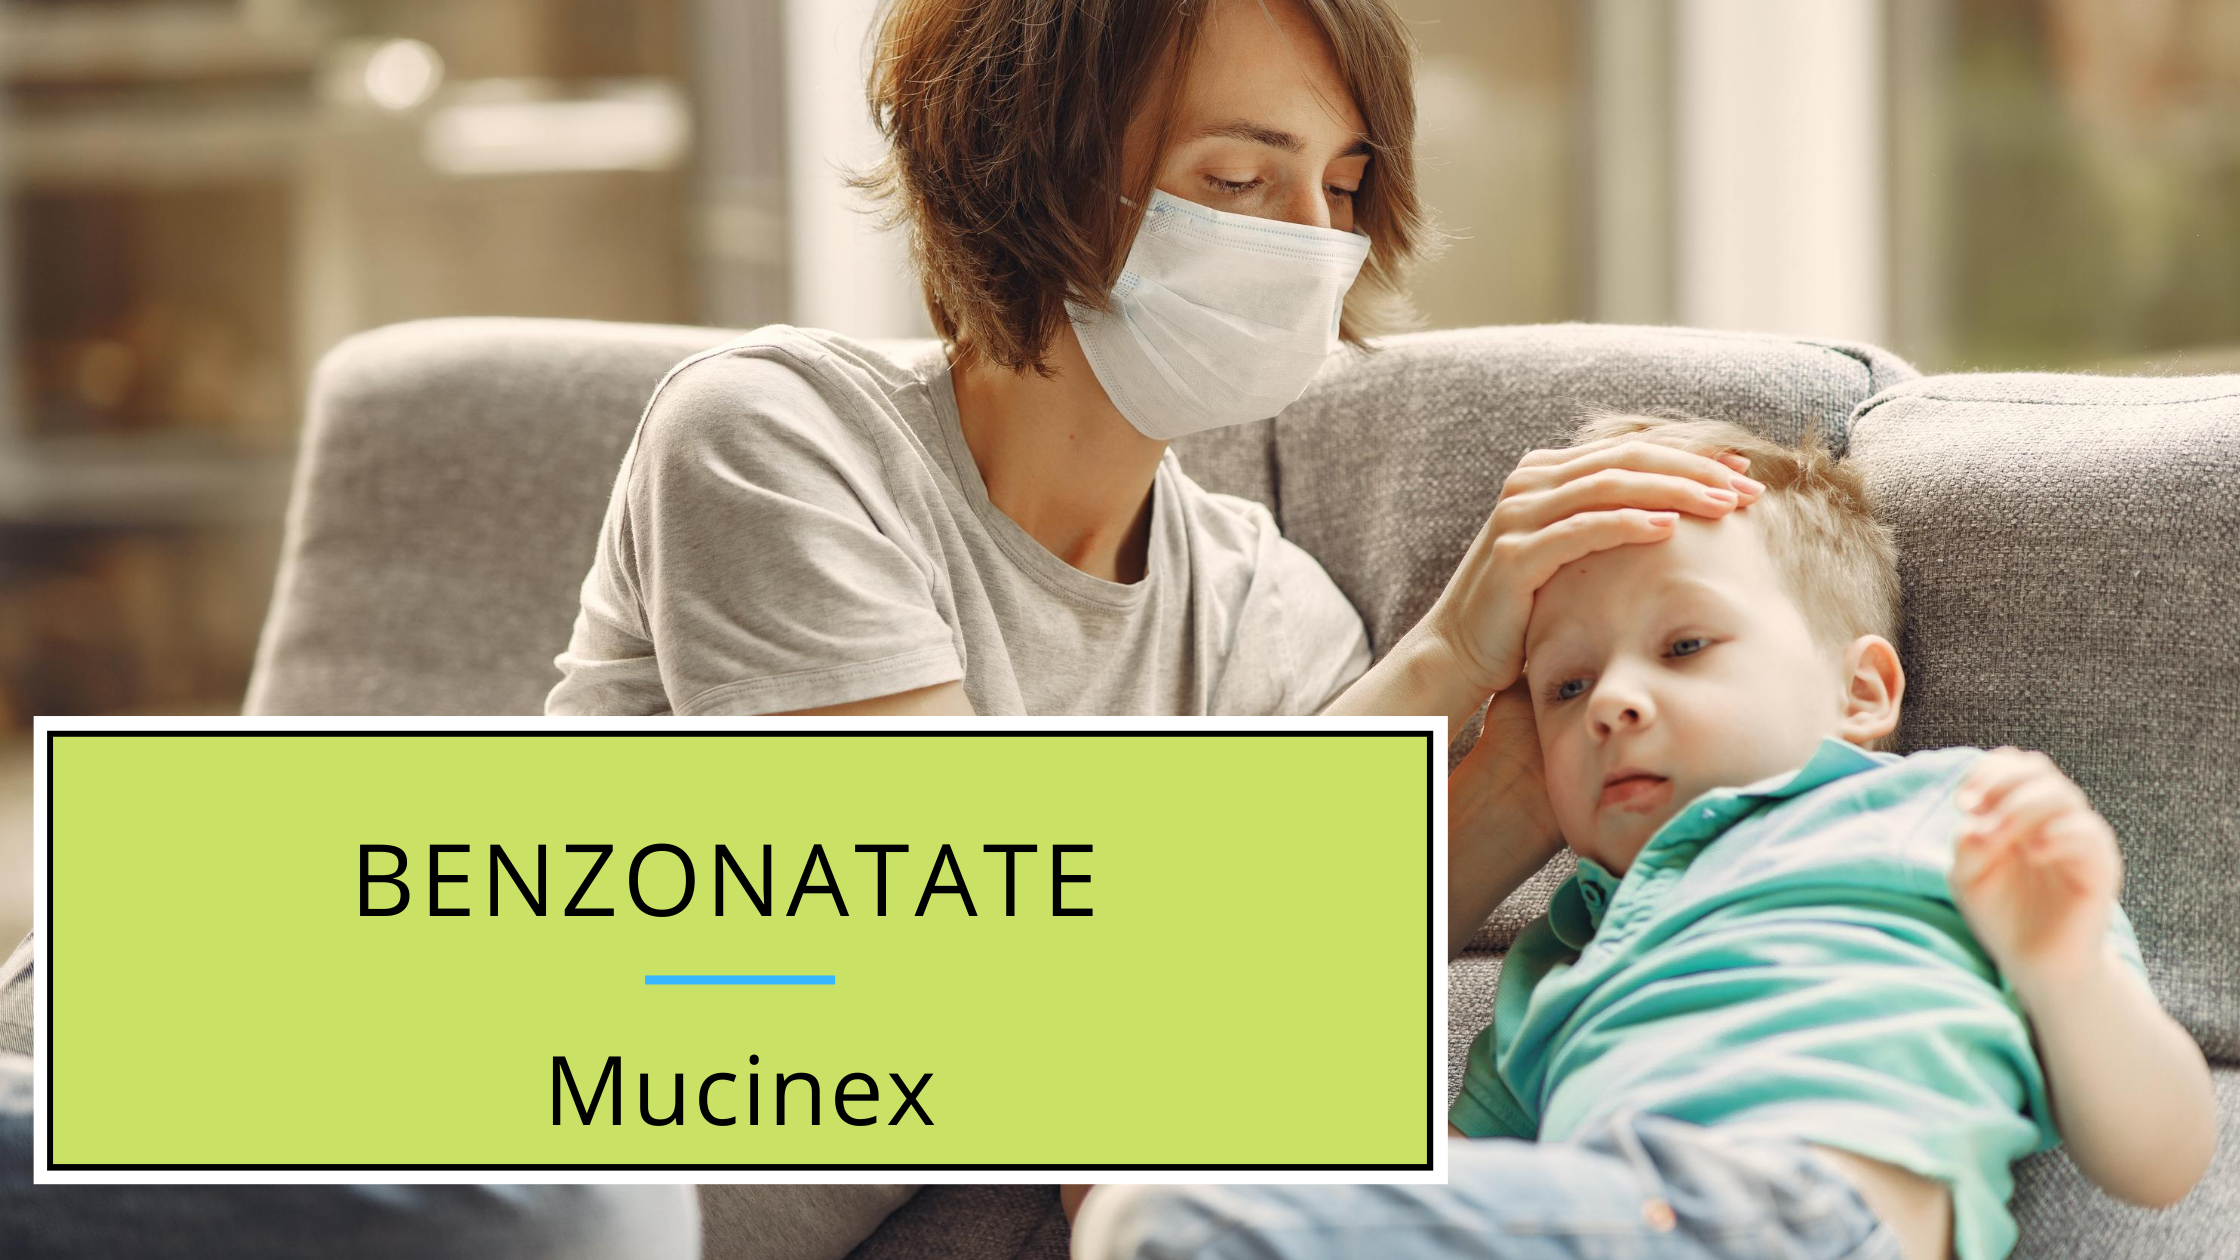 benzonatate and mucinex